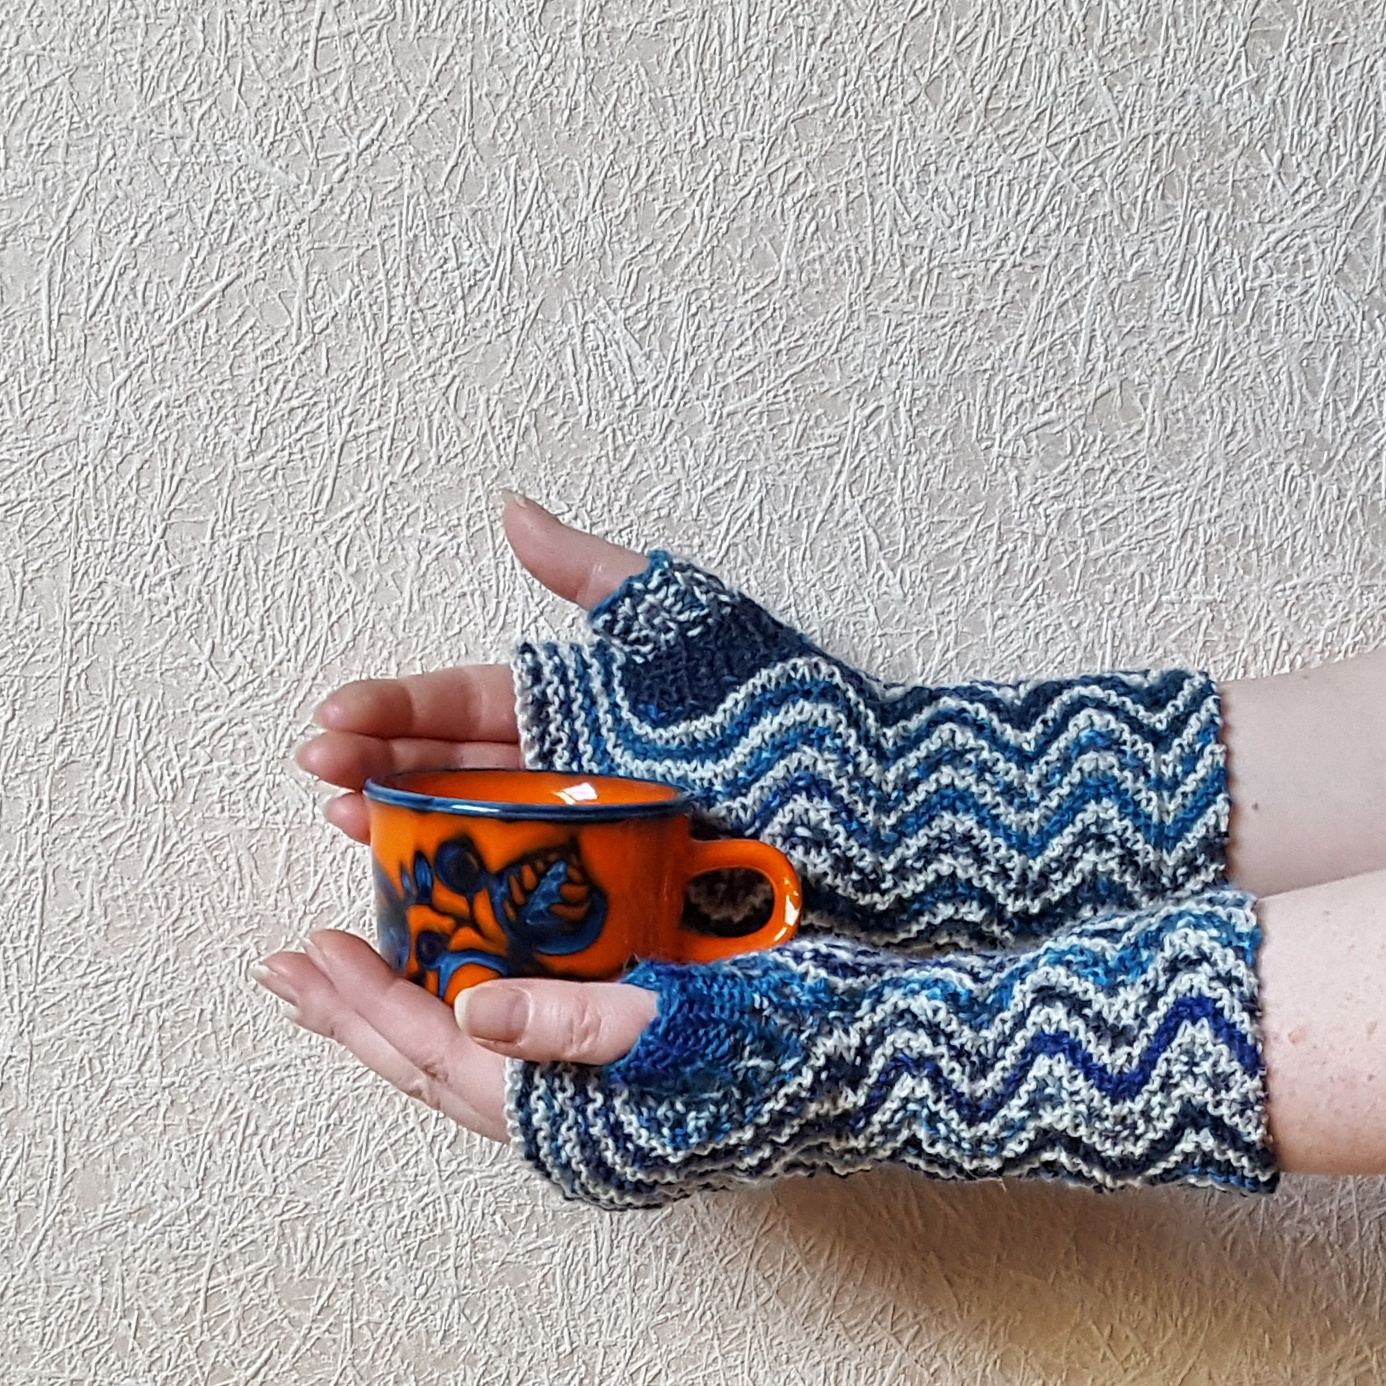 Abbreviation Kfb In Knitting : Knitting and so on helgoland mitts